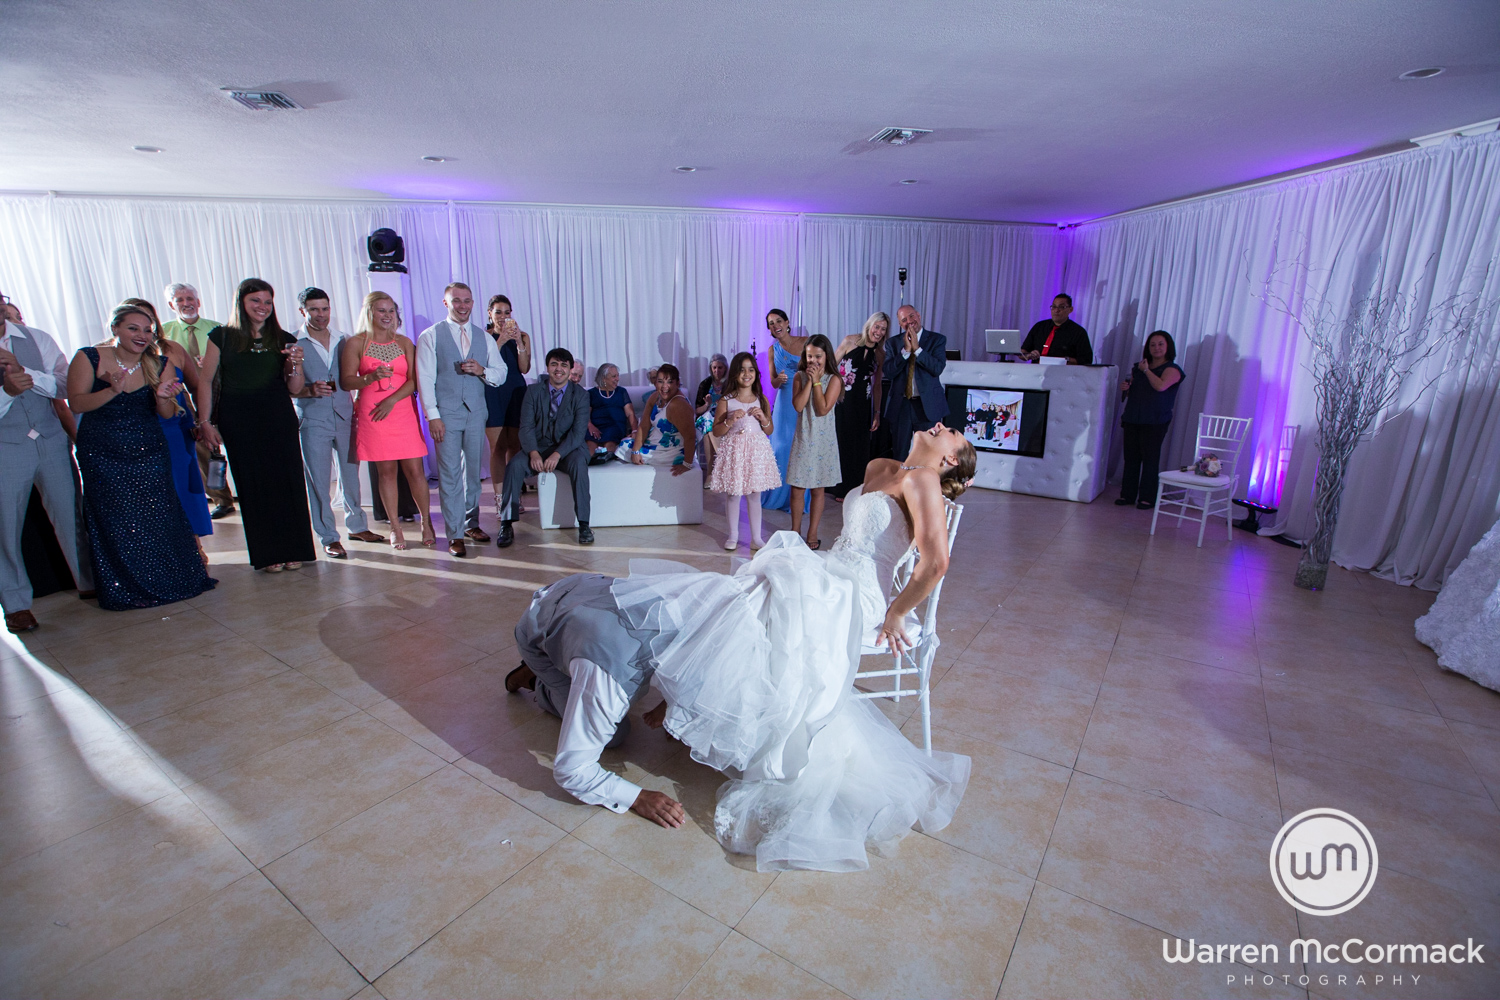 Logan's Place Miami Wedding - Warren McCormack Photographer3.jpg